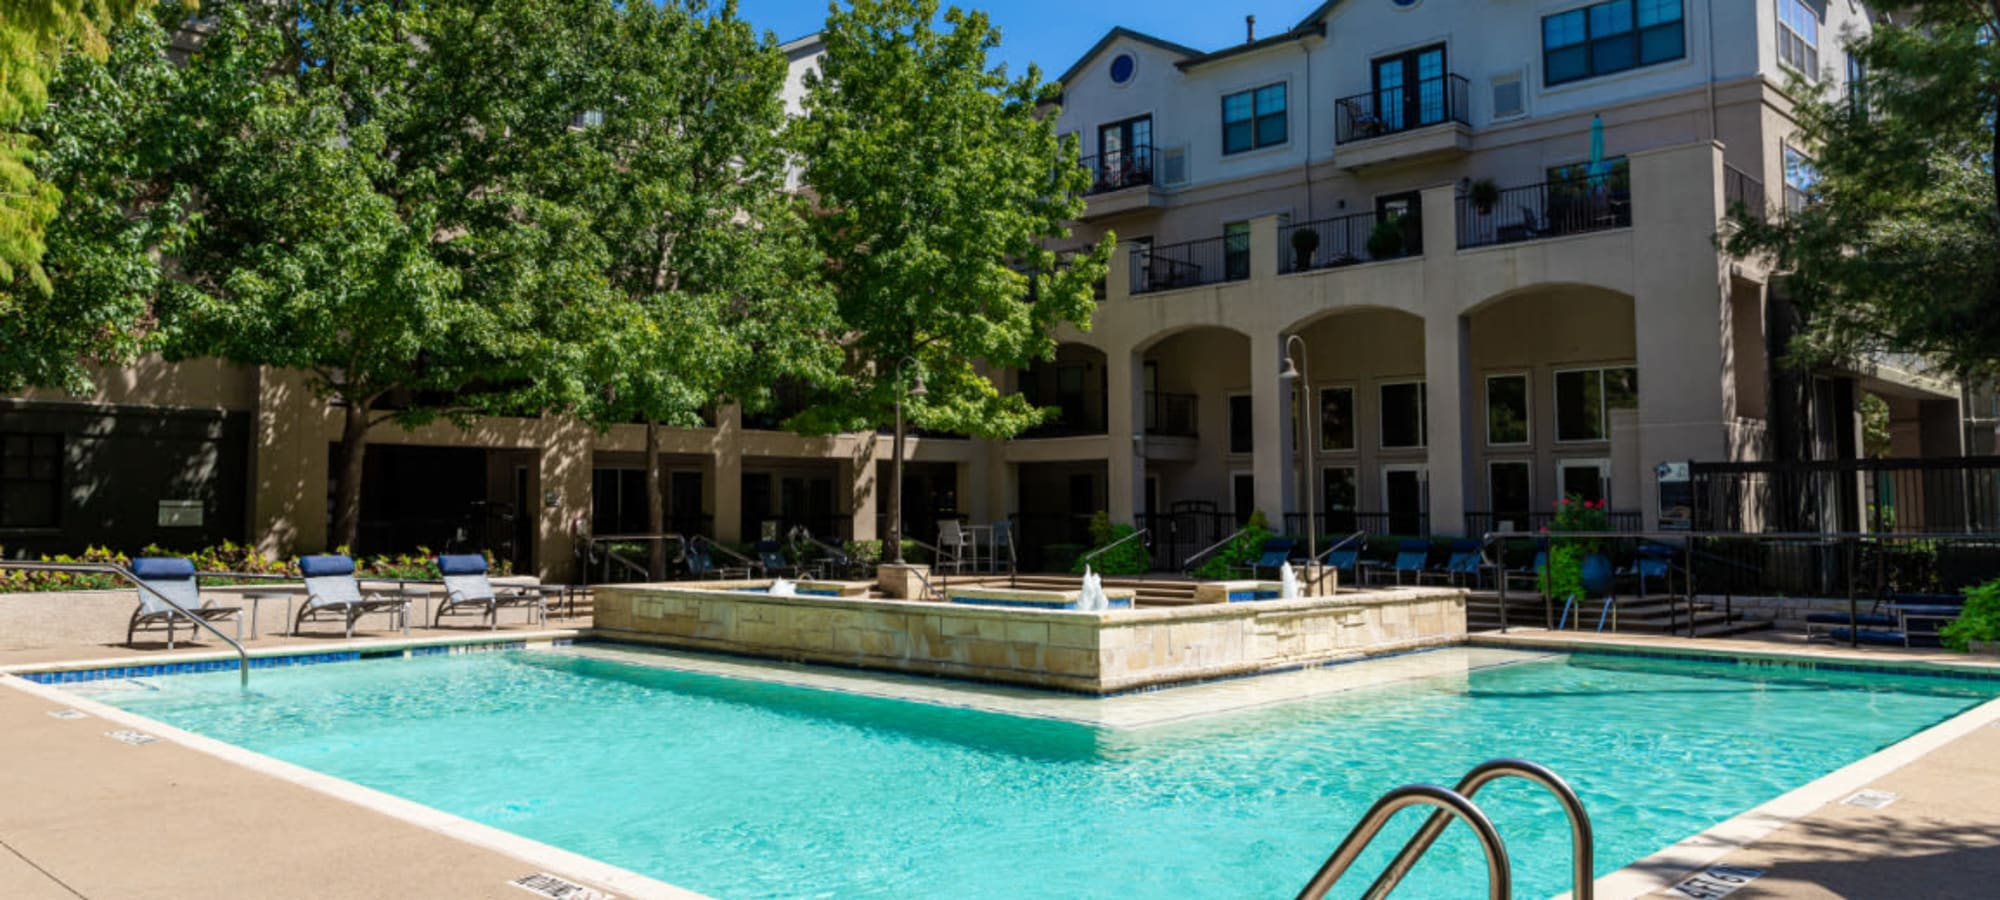 Gallery of photos for Marquis at Texas Street in Dallas, Texas